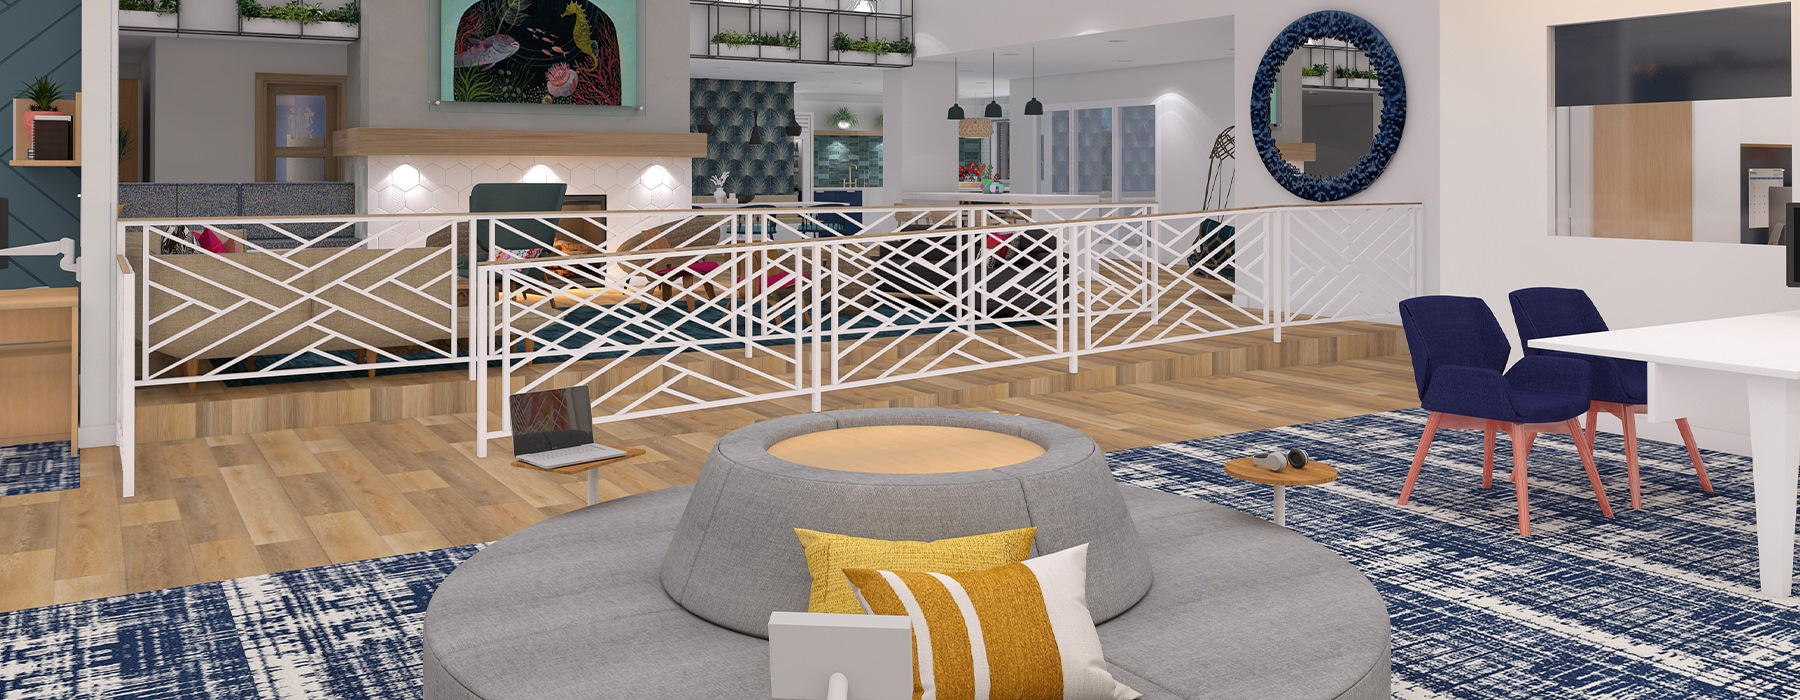 Spacious and well lit clubhouse with plenty of seating to hang out or work from home